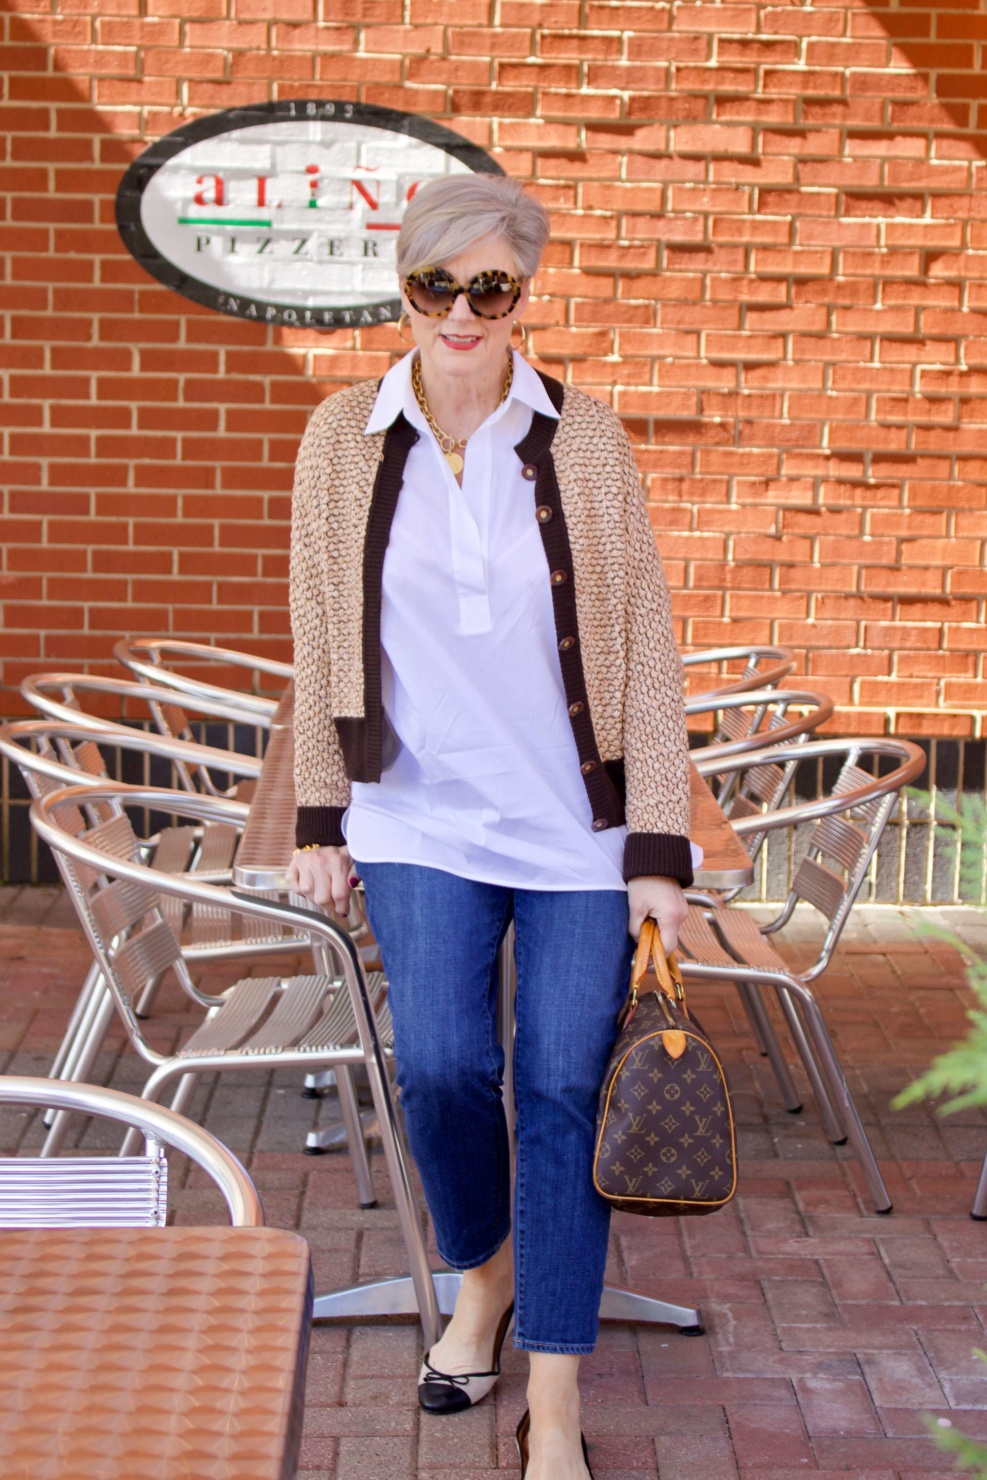 beth from Style at a Certain goes shopping wearing a Lafayette 148 white shirt, St. John Sport sweater, girlfriend jeans, and ballet flats